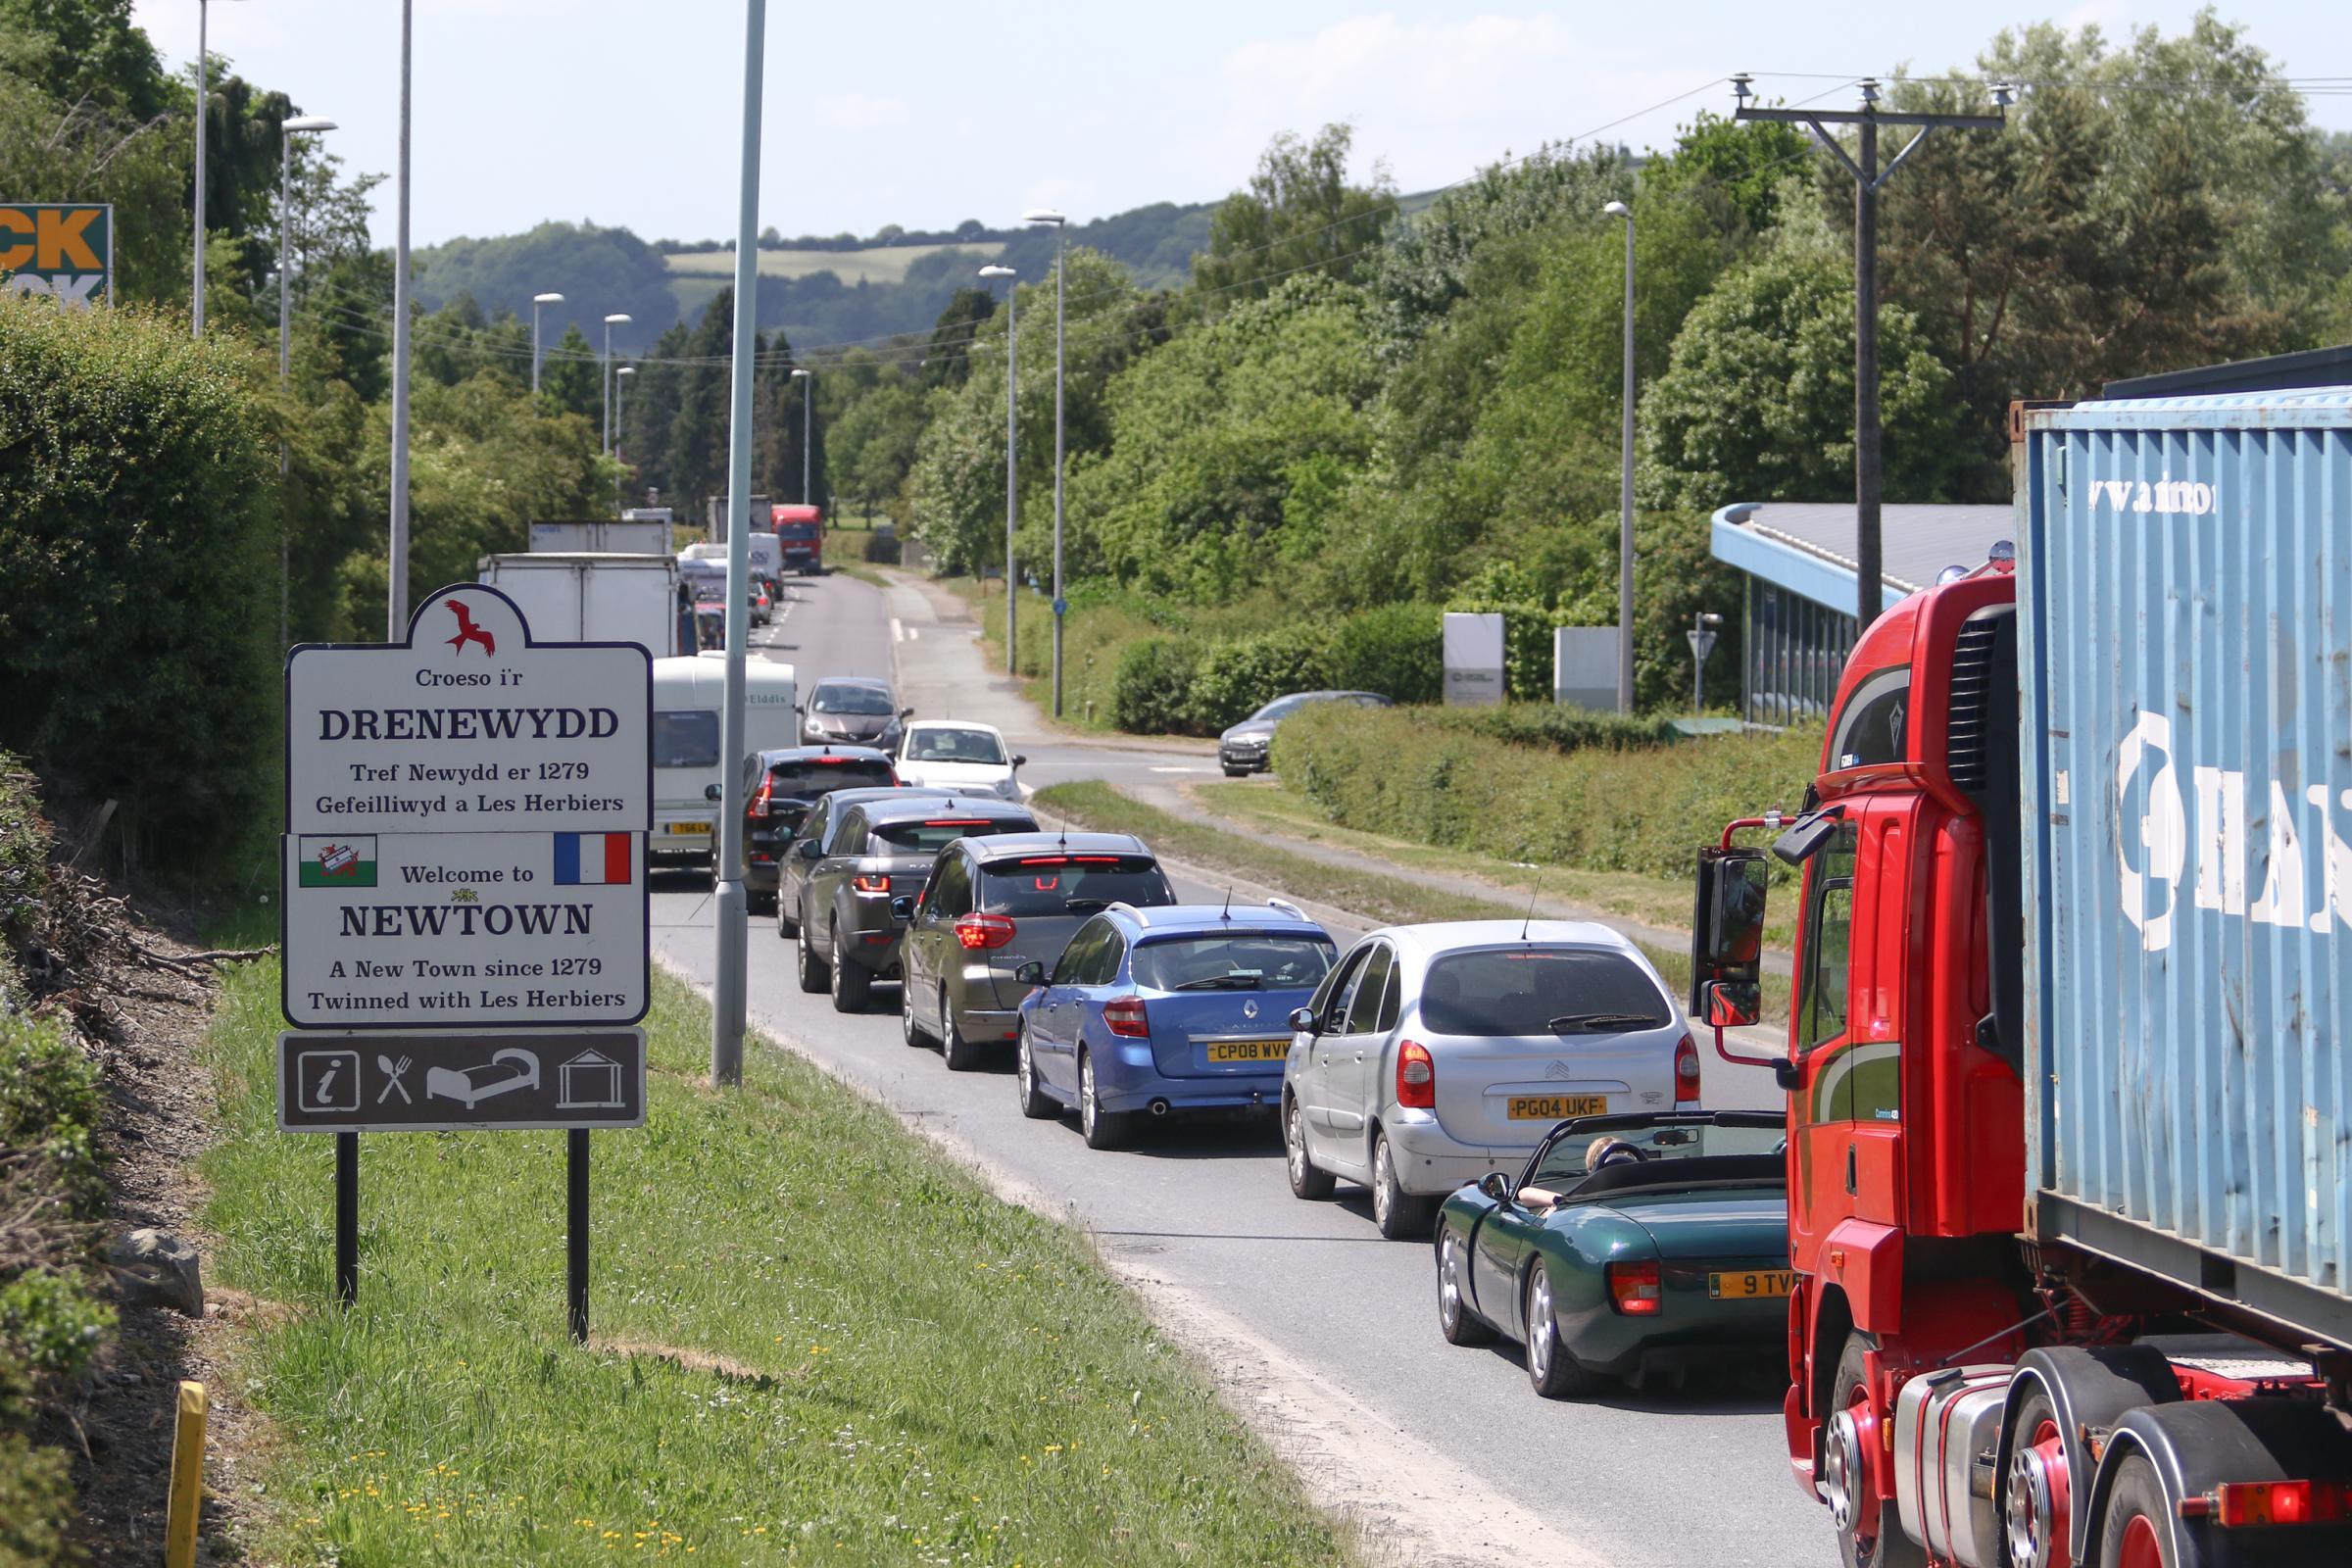 Traffic congestion on the A483 approaching Newtown, Powys, a notorious traffic jam blackspot.Mike SheridanMS527-2017